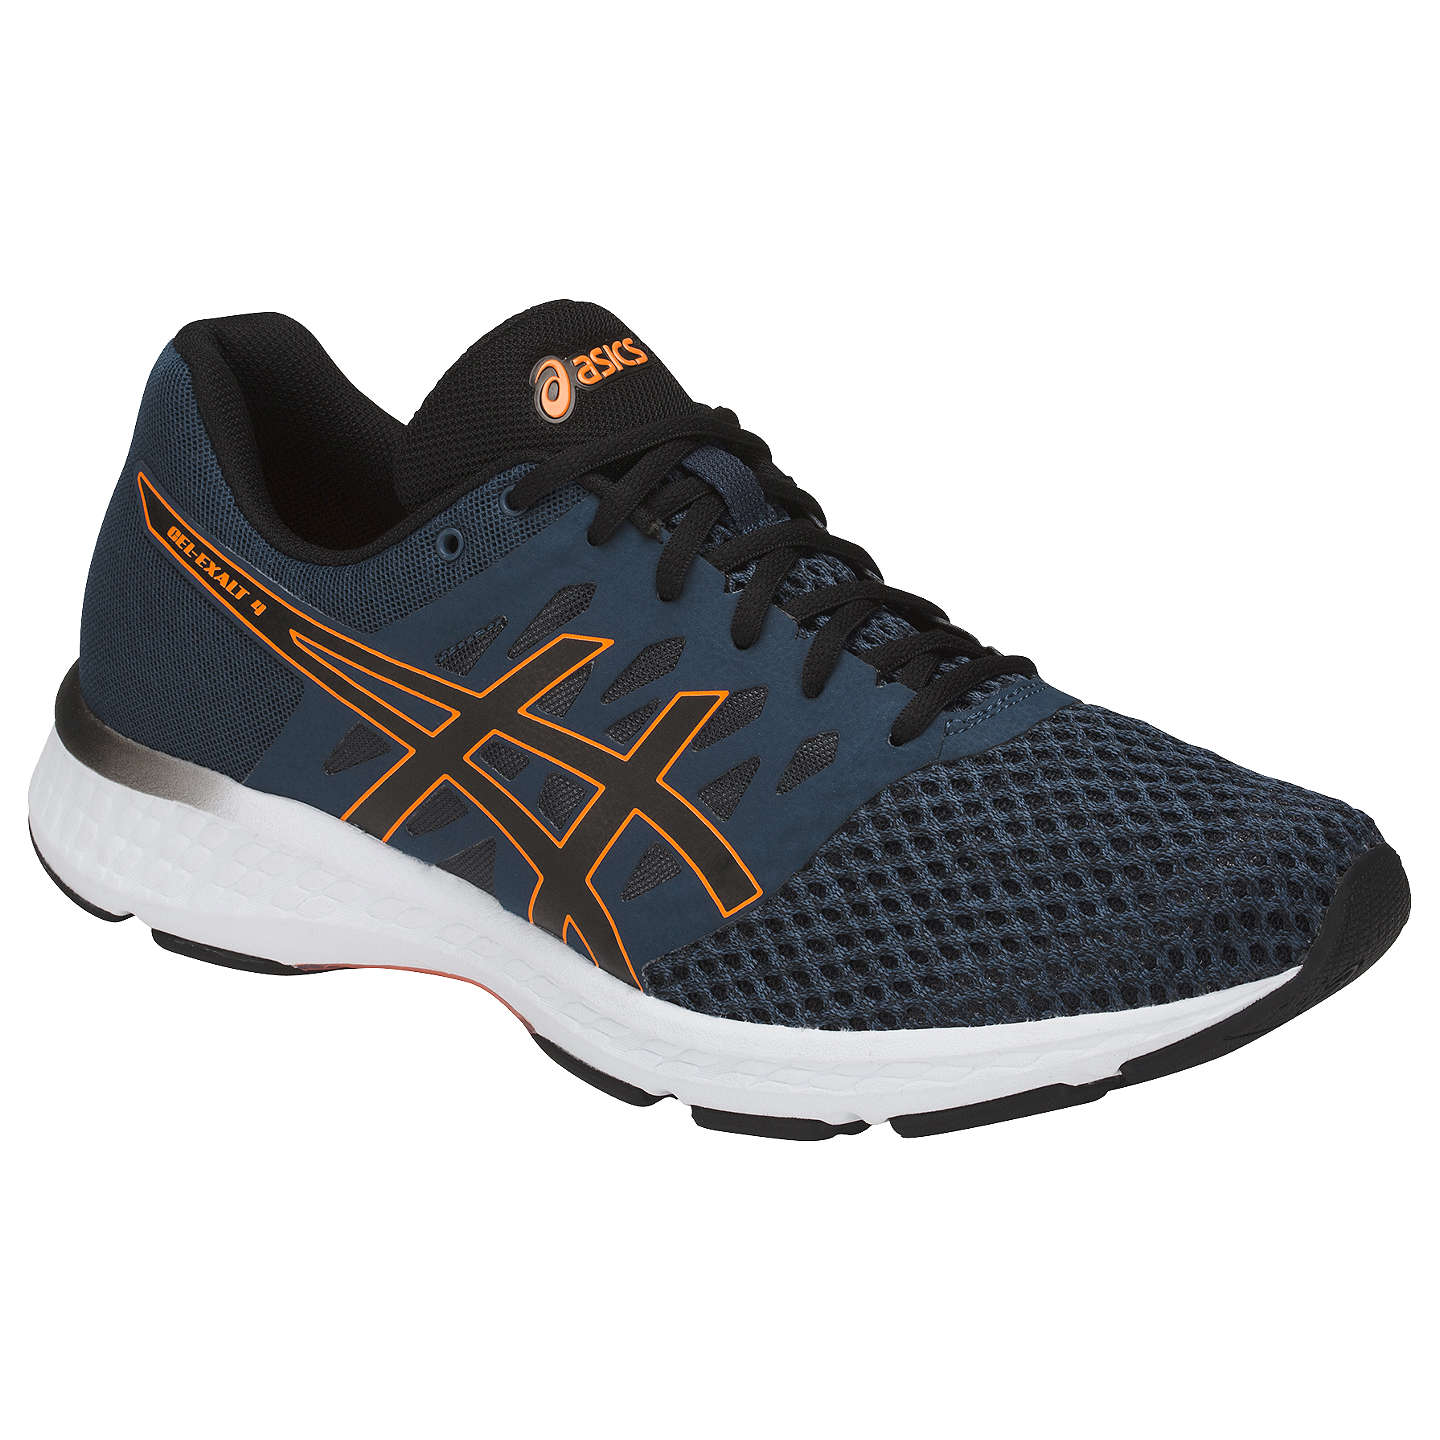 asics shoes afterpay belgie italie streaming 647489